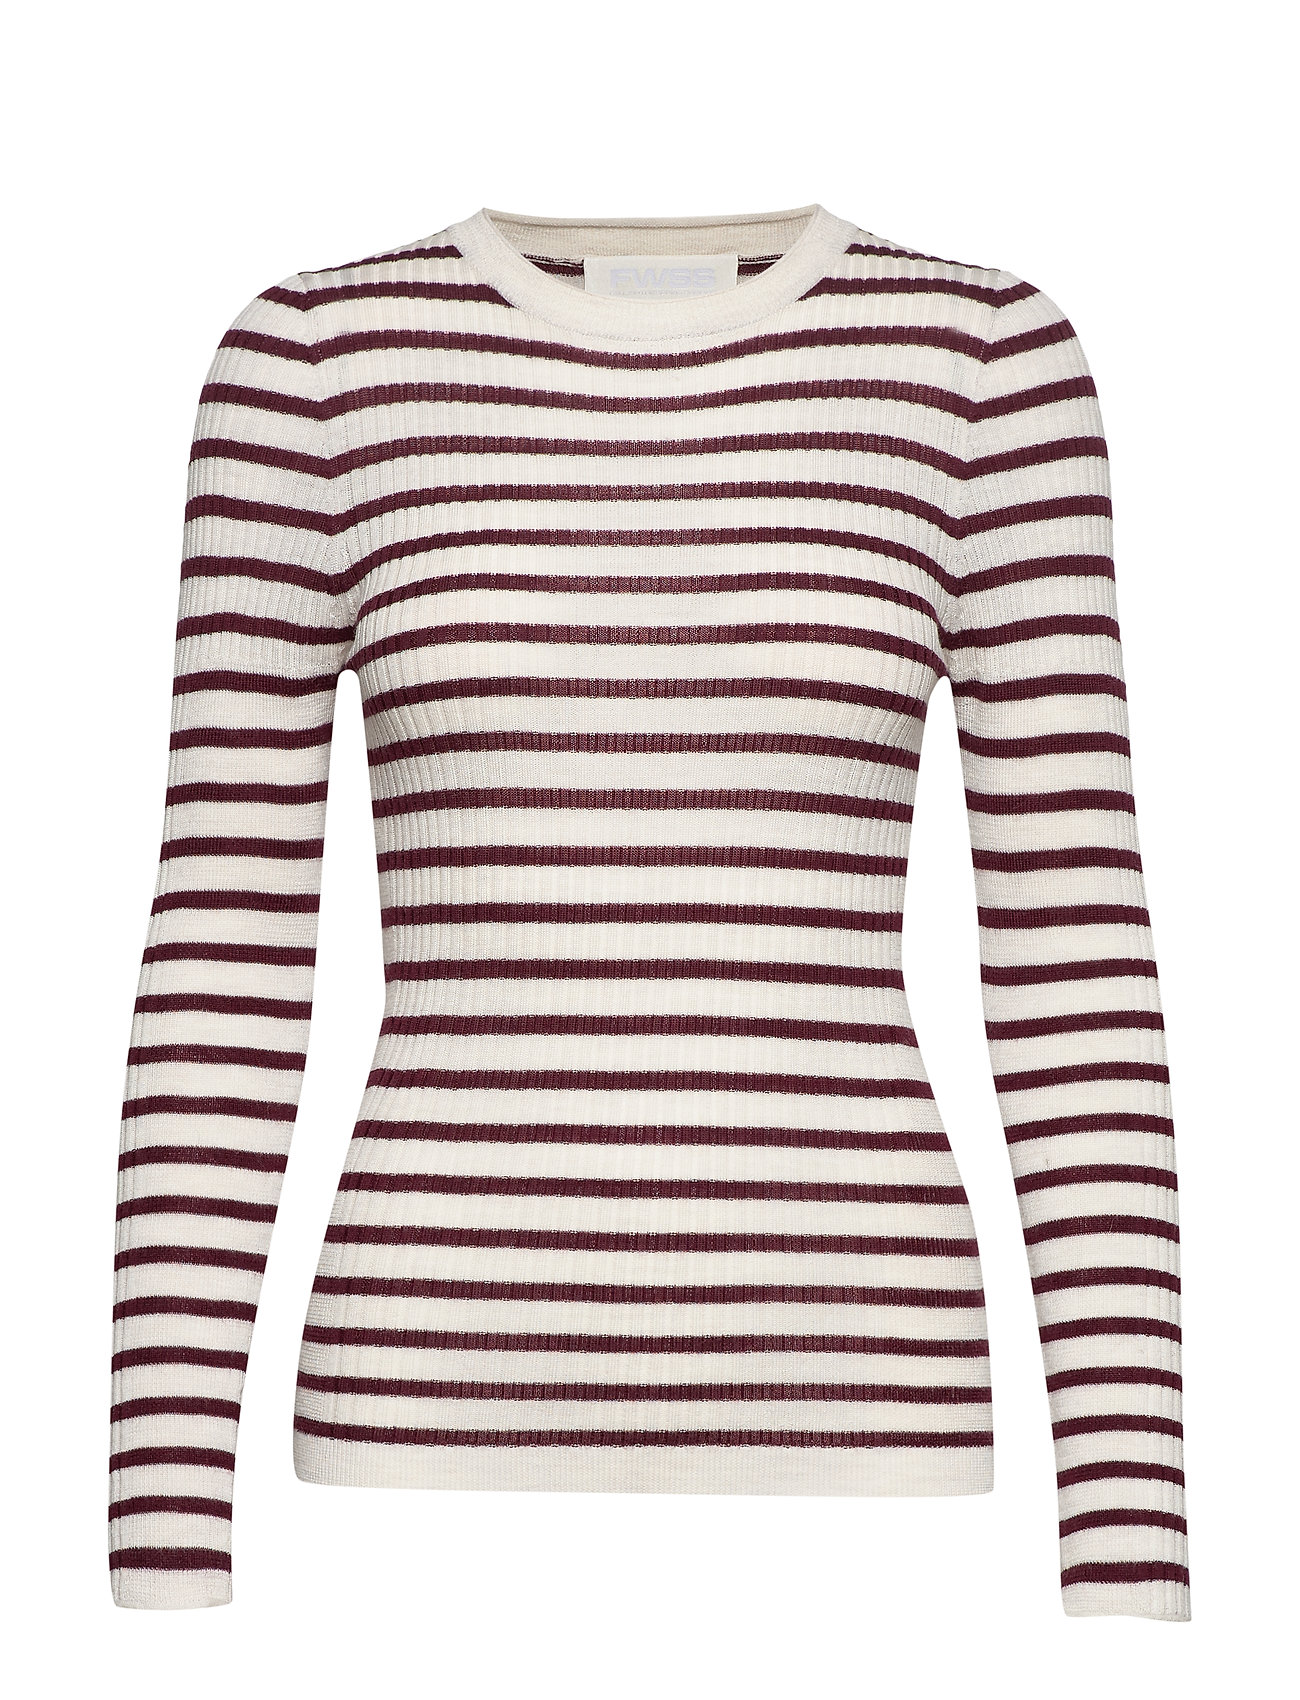 Fall Winter Spring Summer Annika - MADDER BROWN STRIPES